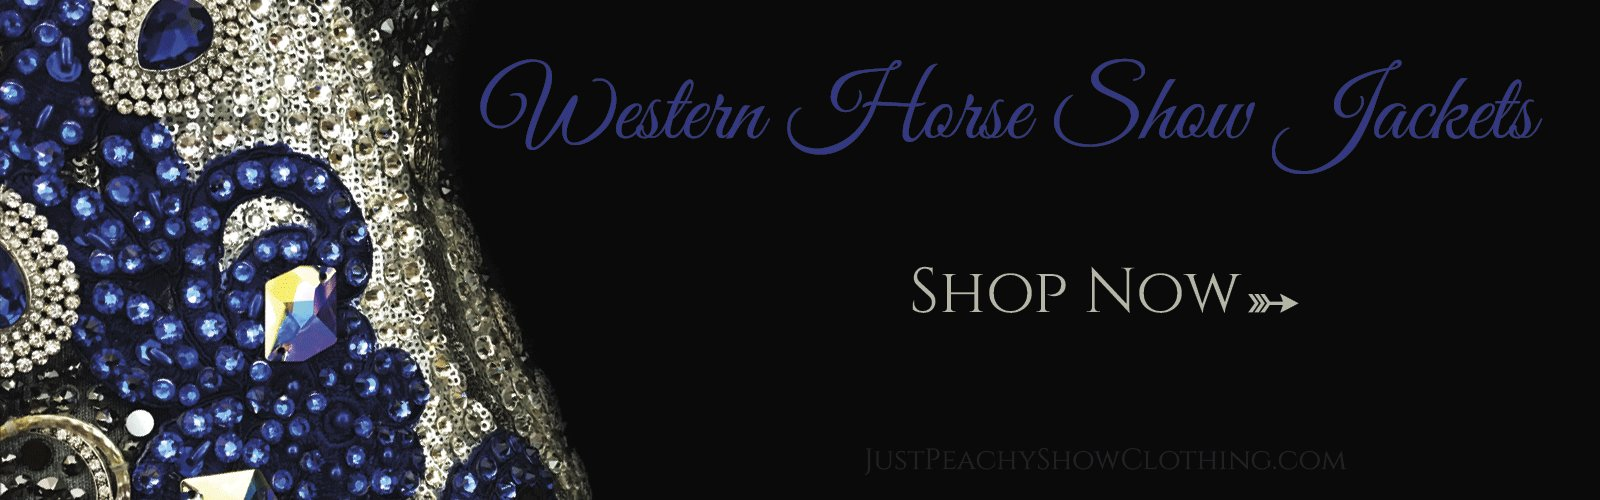 Western Horse Show Jackets